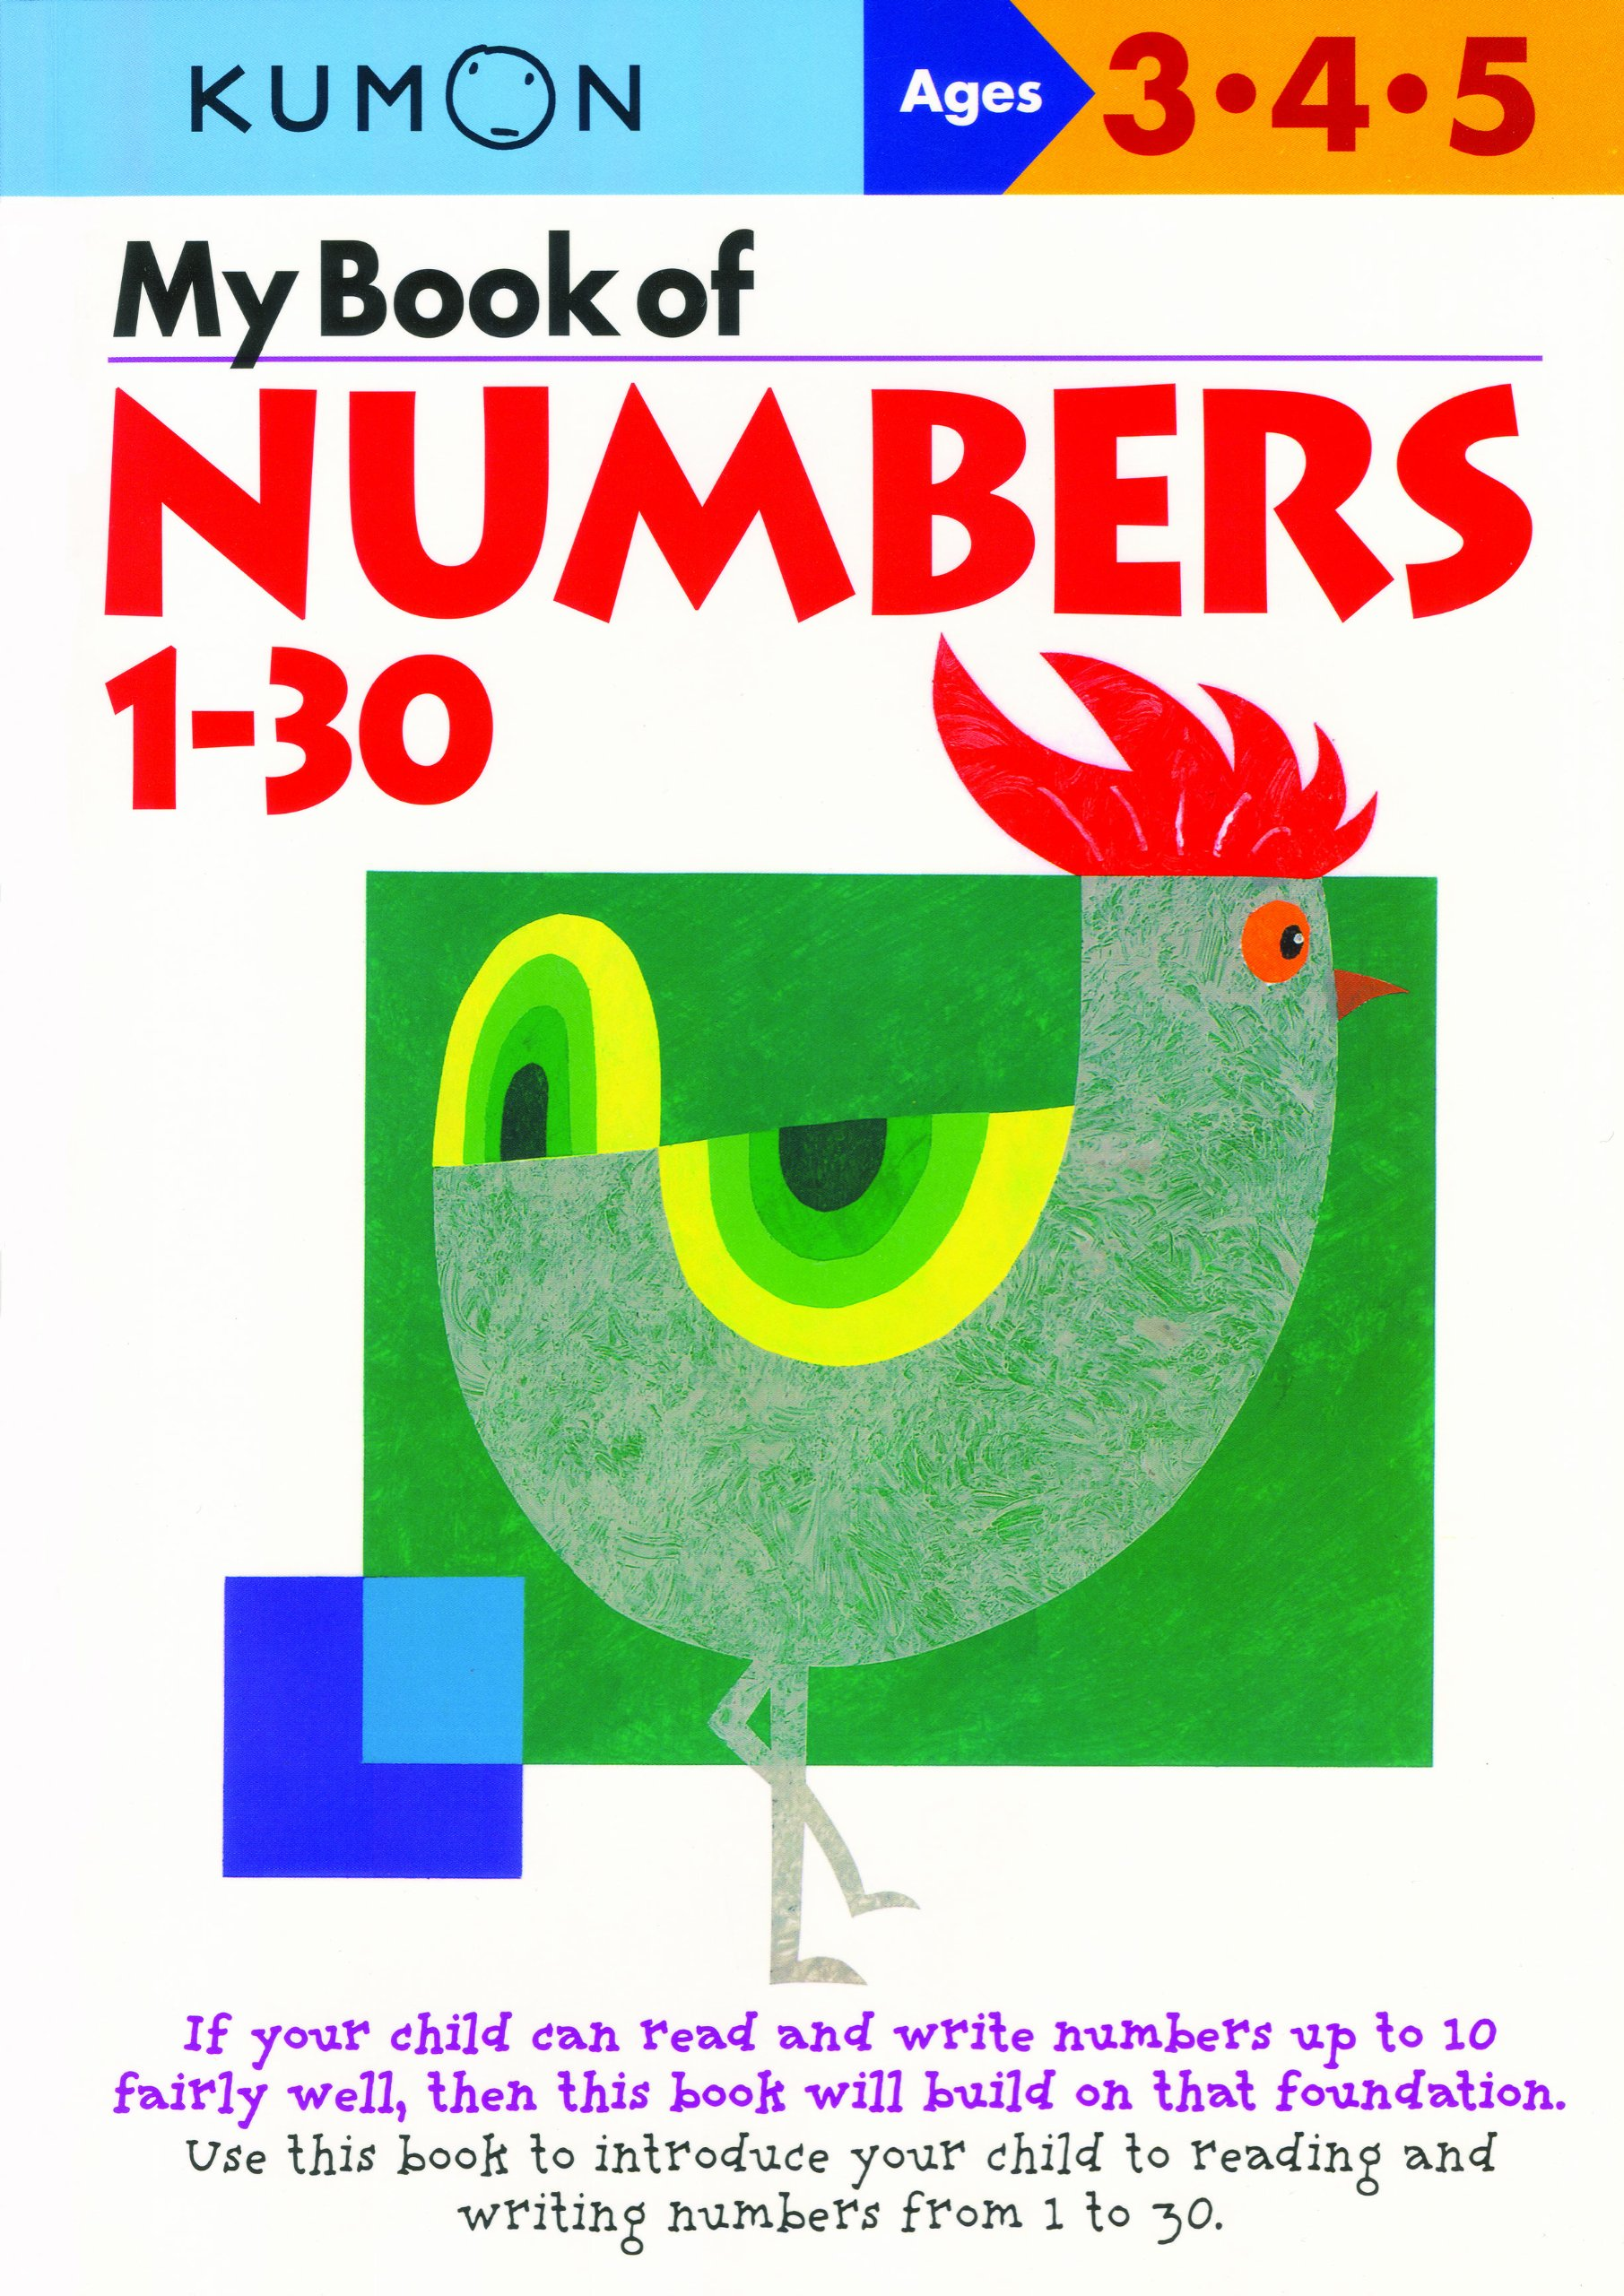 My Book of Numbers, 1-30 (Kumon\'s Practice Books): Amazon.co.uk ...